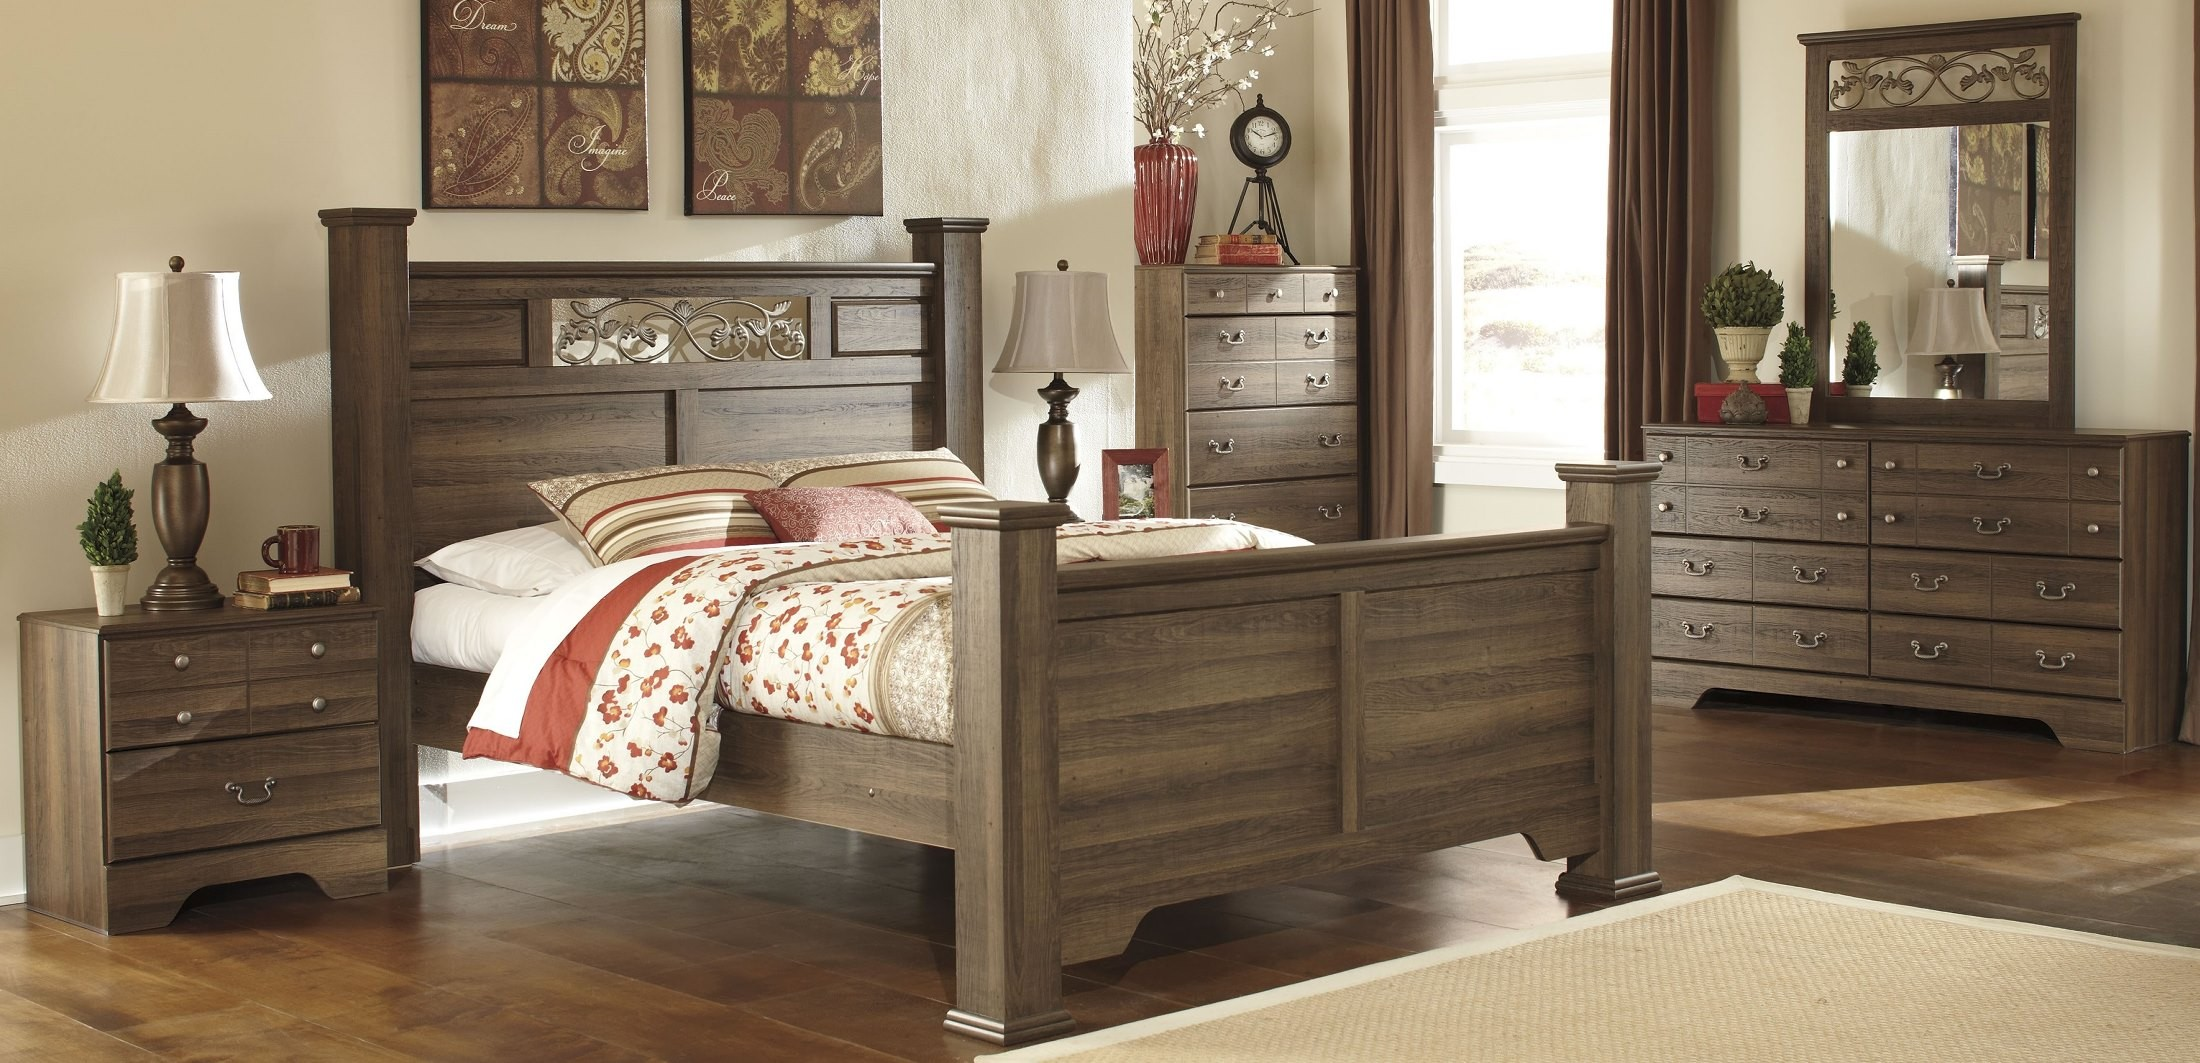 Allymore poster bedroom set from ashley b216 77 71 74 96 coleman furniture for Bedroom furniture washington dc